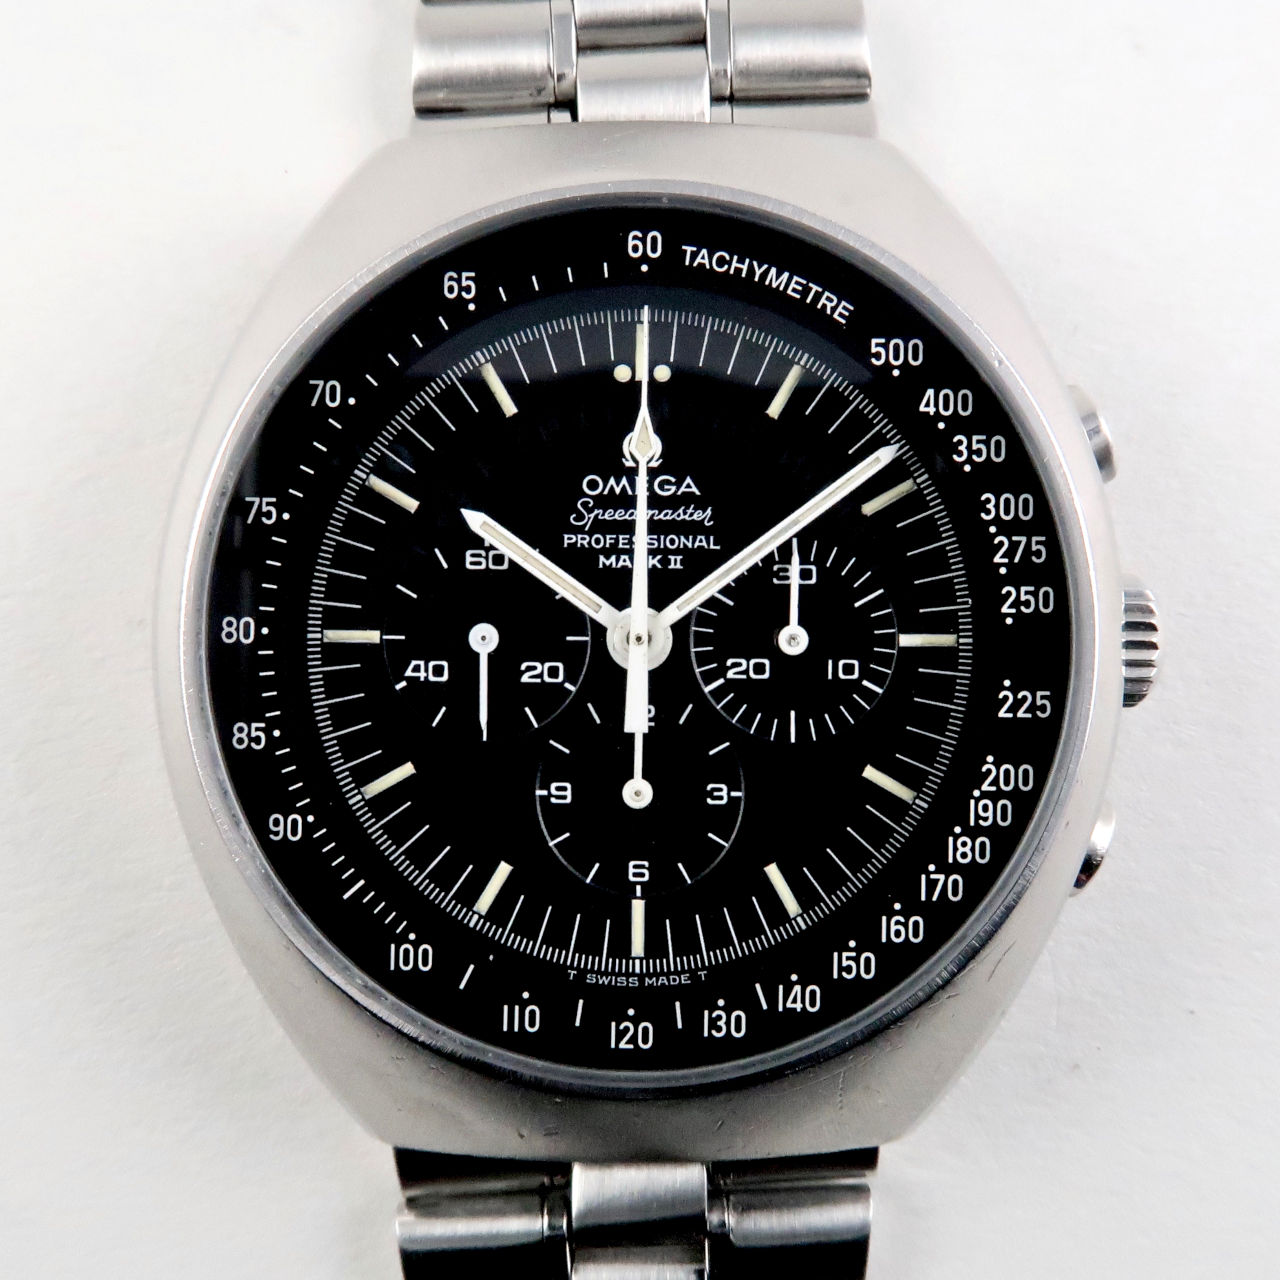 Omega Speedmaster Mark II Ref. 145.014 steel vintage chronograph wristwatch, circa 1969